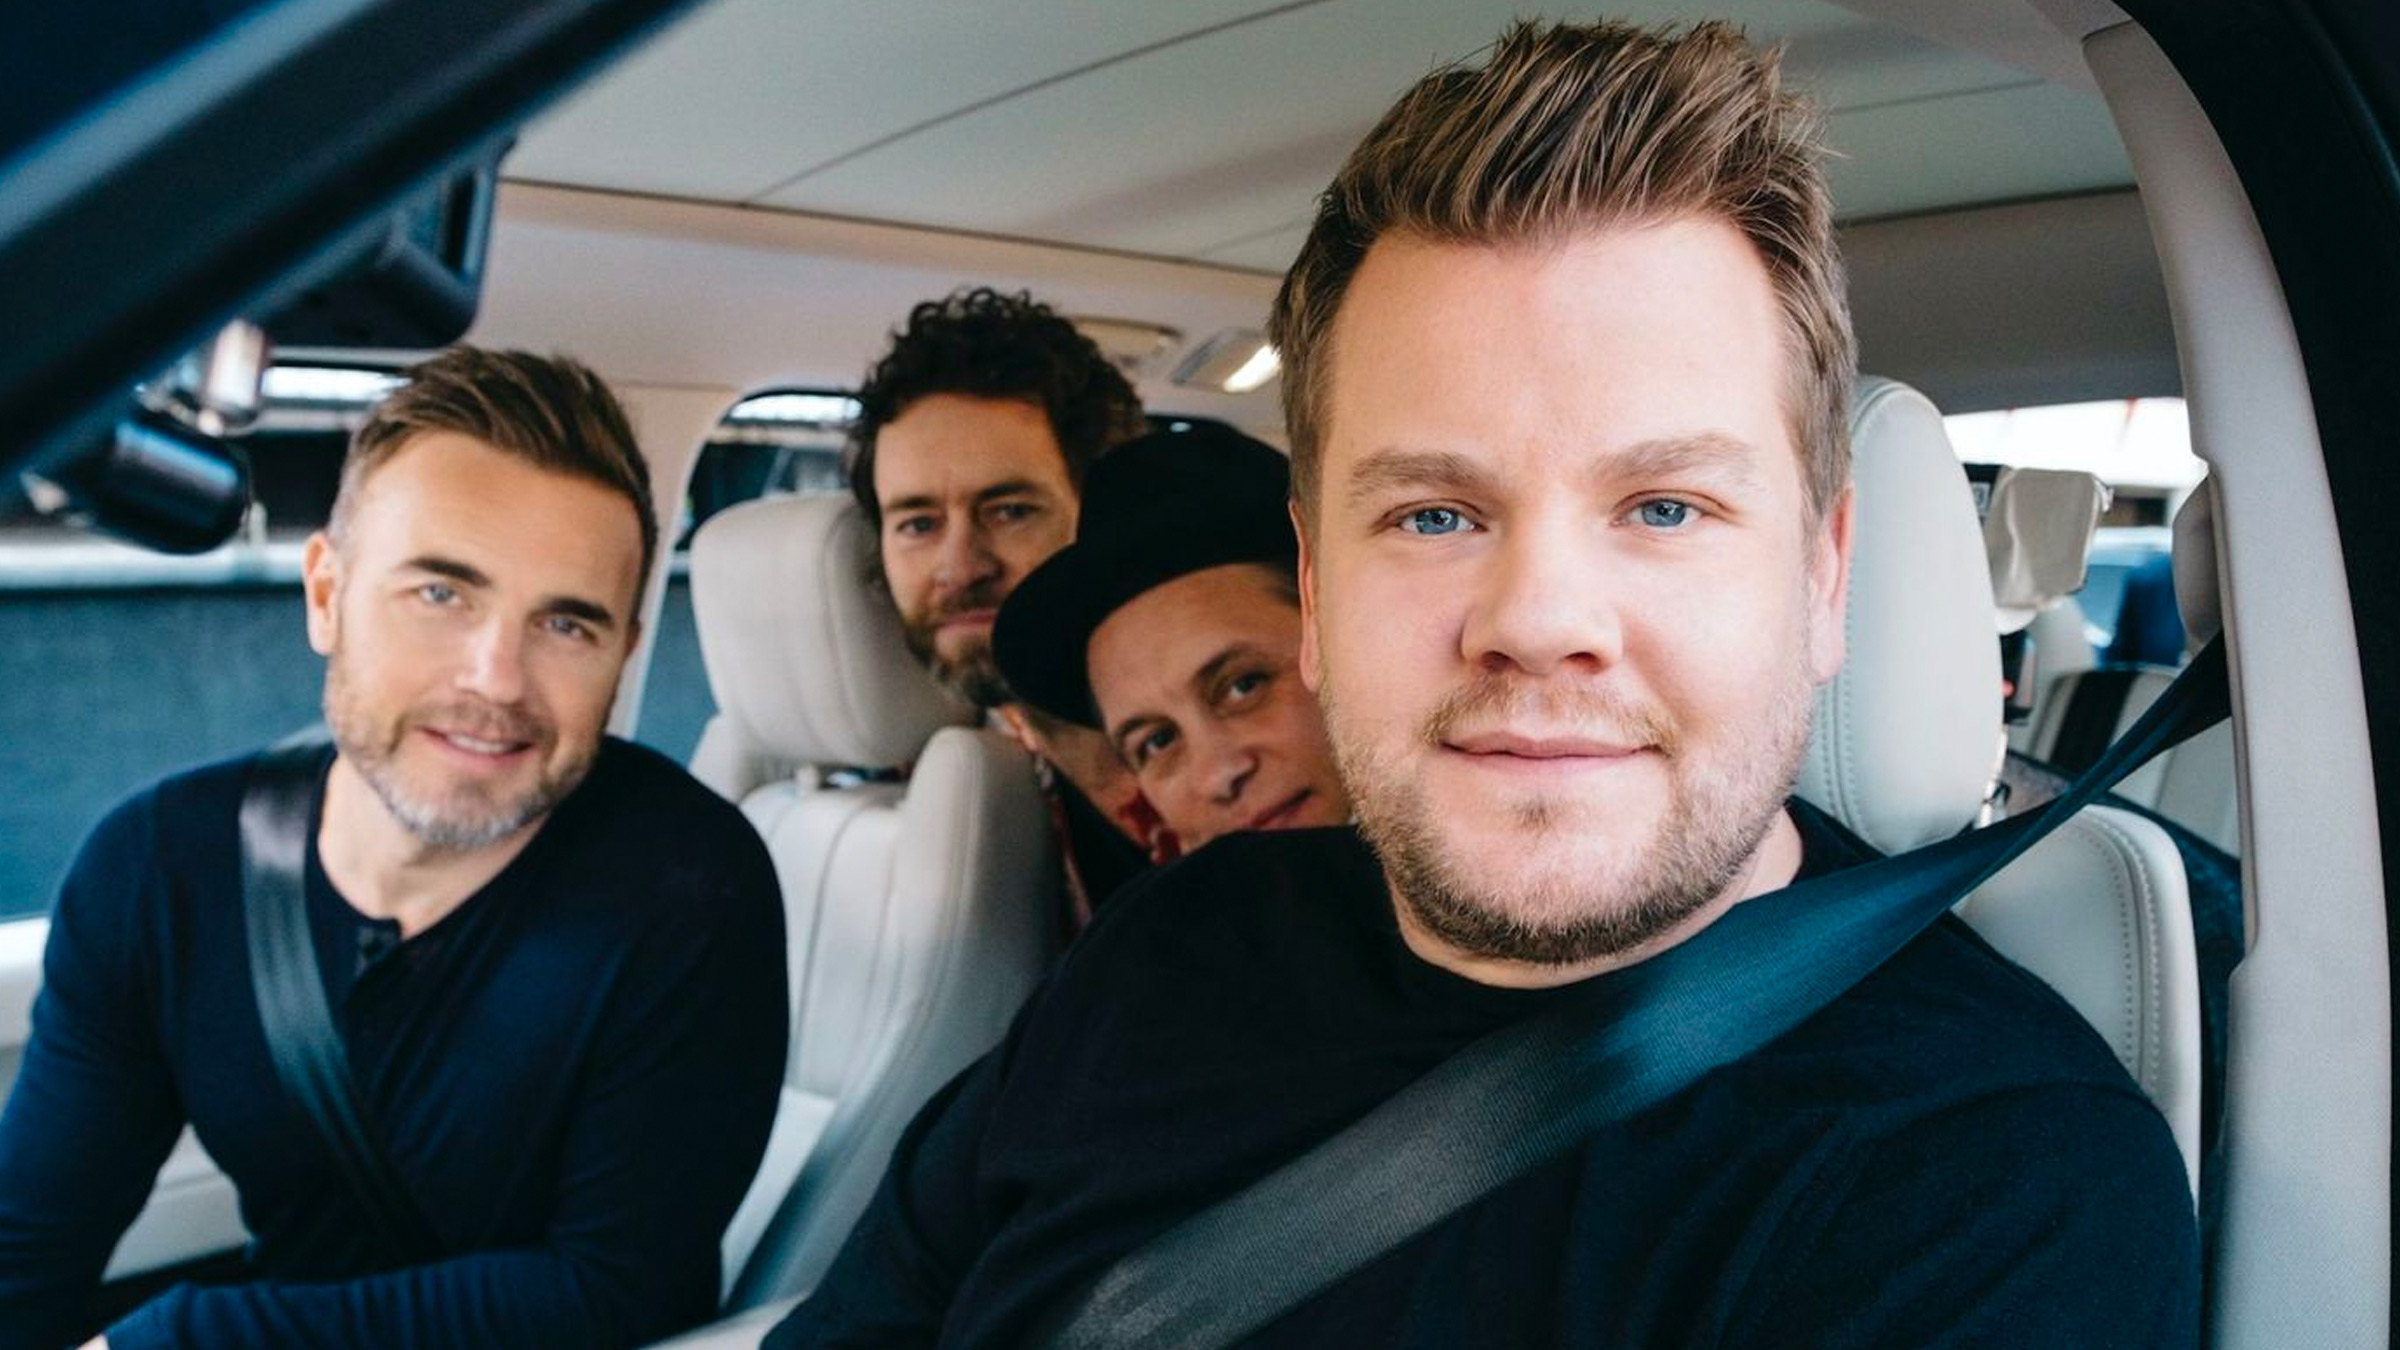 Take that carpool teaser